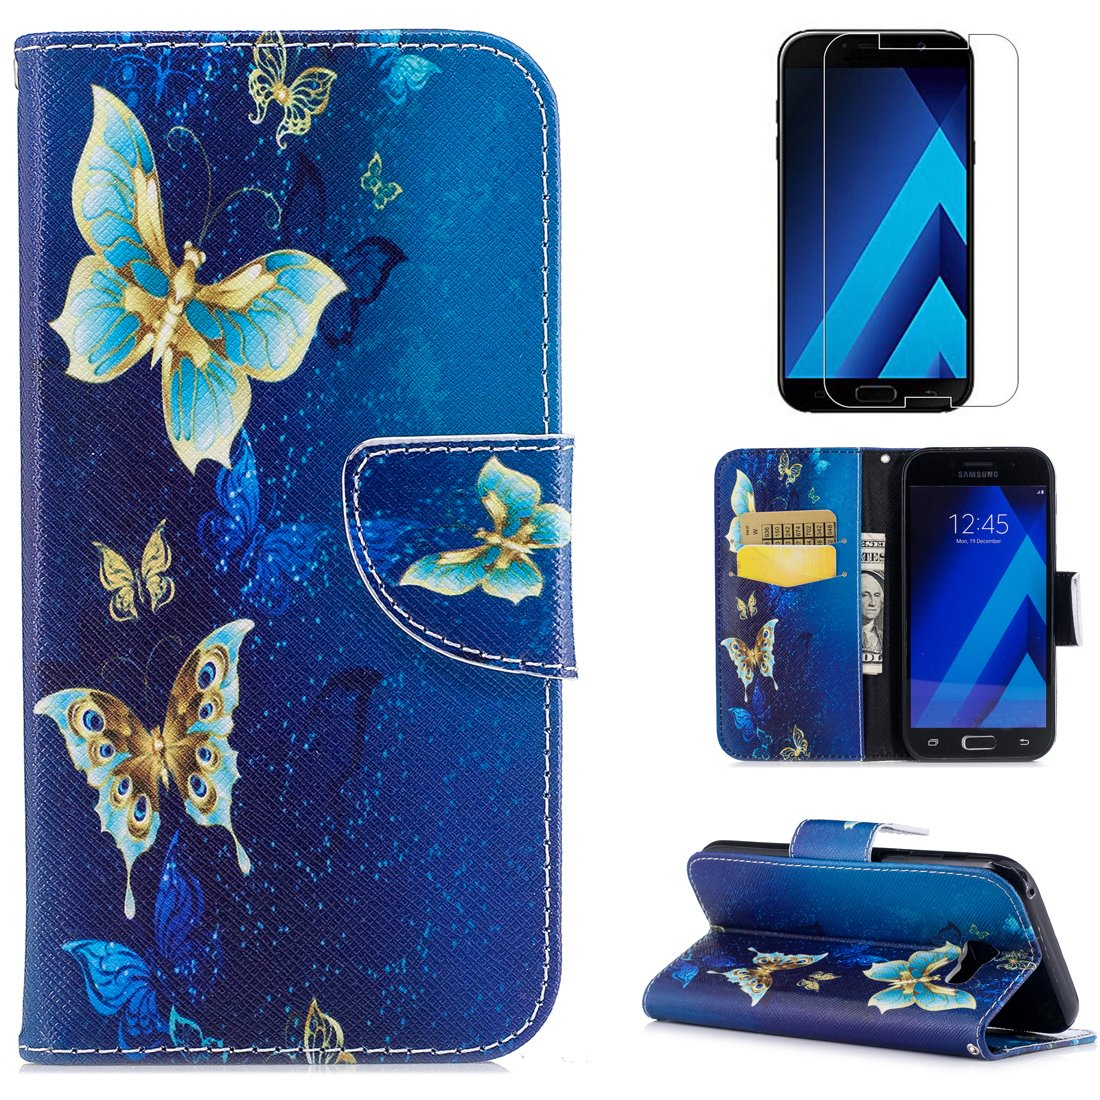 For Samsung Galaxy A5 2017 A520 Wallet Case and Screen Protector, OYIME [Colorful Painting] Elegant Pattern Design Bookstyle Leather Holster Kickstand Card Slots Function Full Body Protection Bumper Magnetic Closure Flip Cover with Wrist Lanyard - Cute Pan